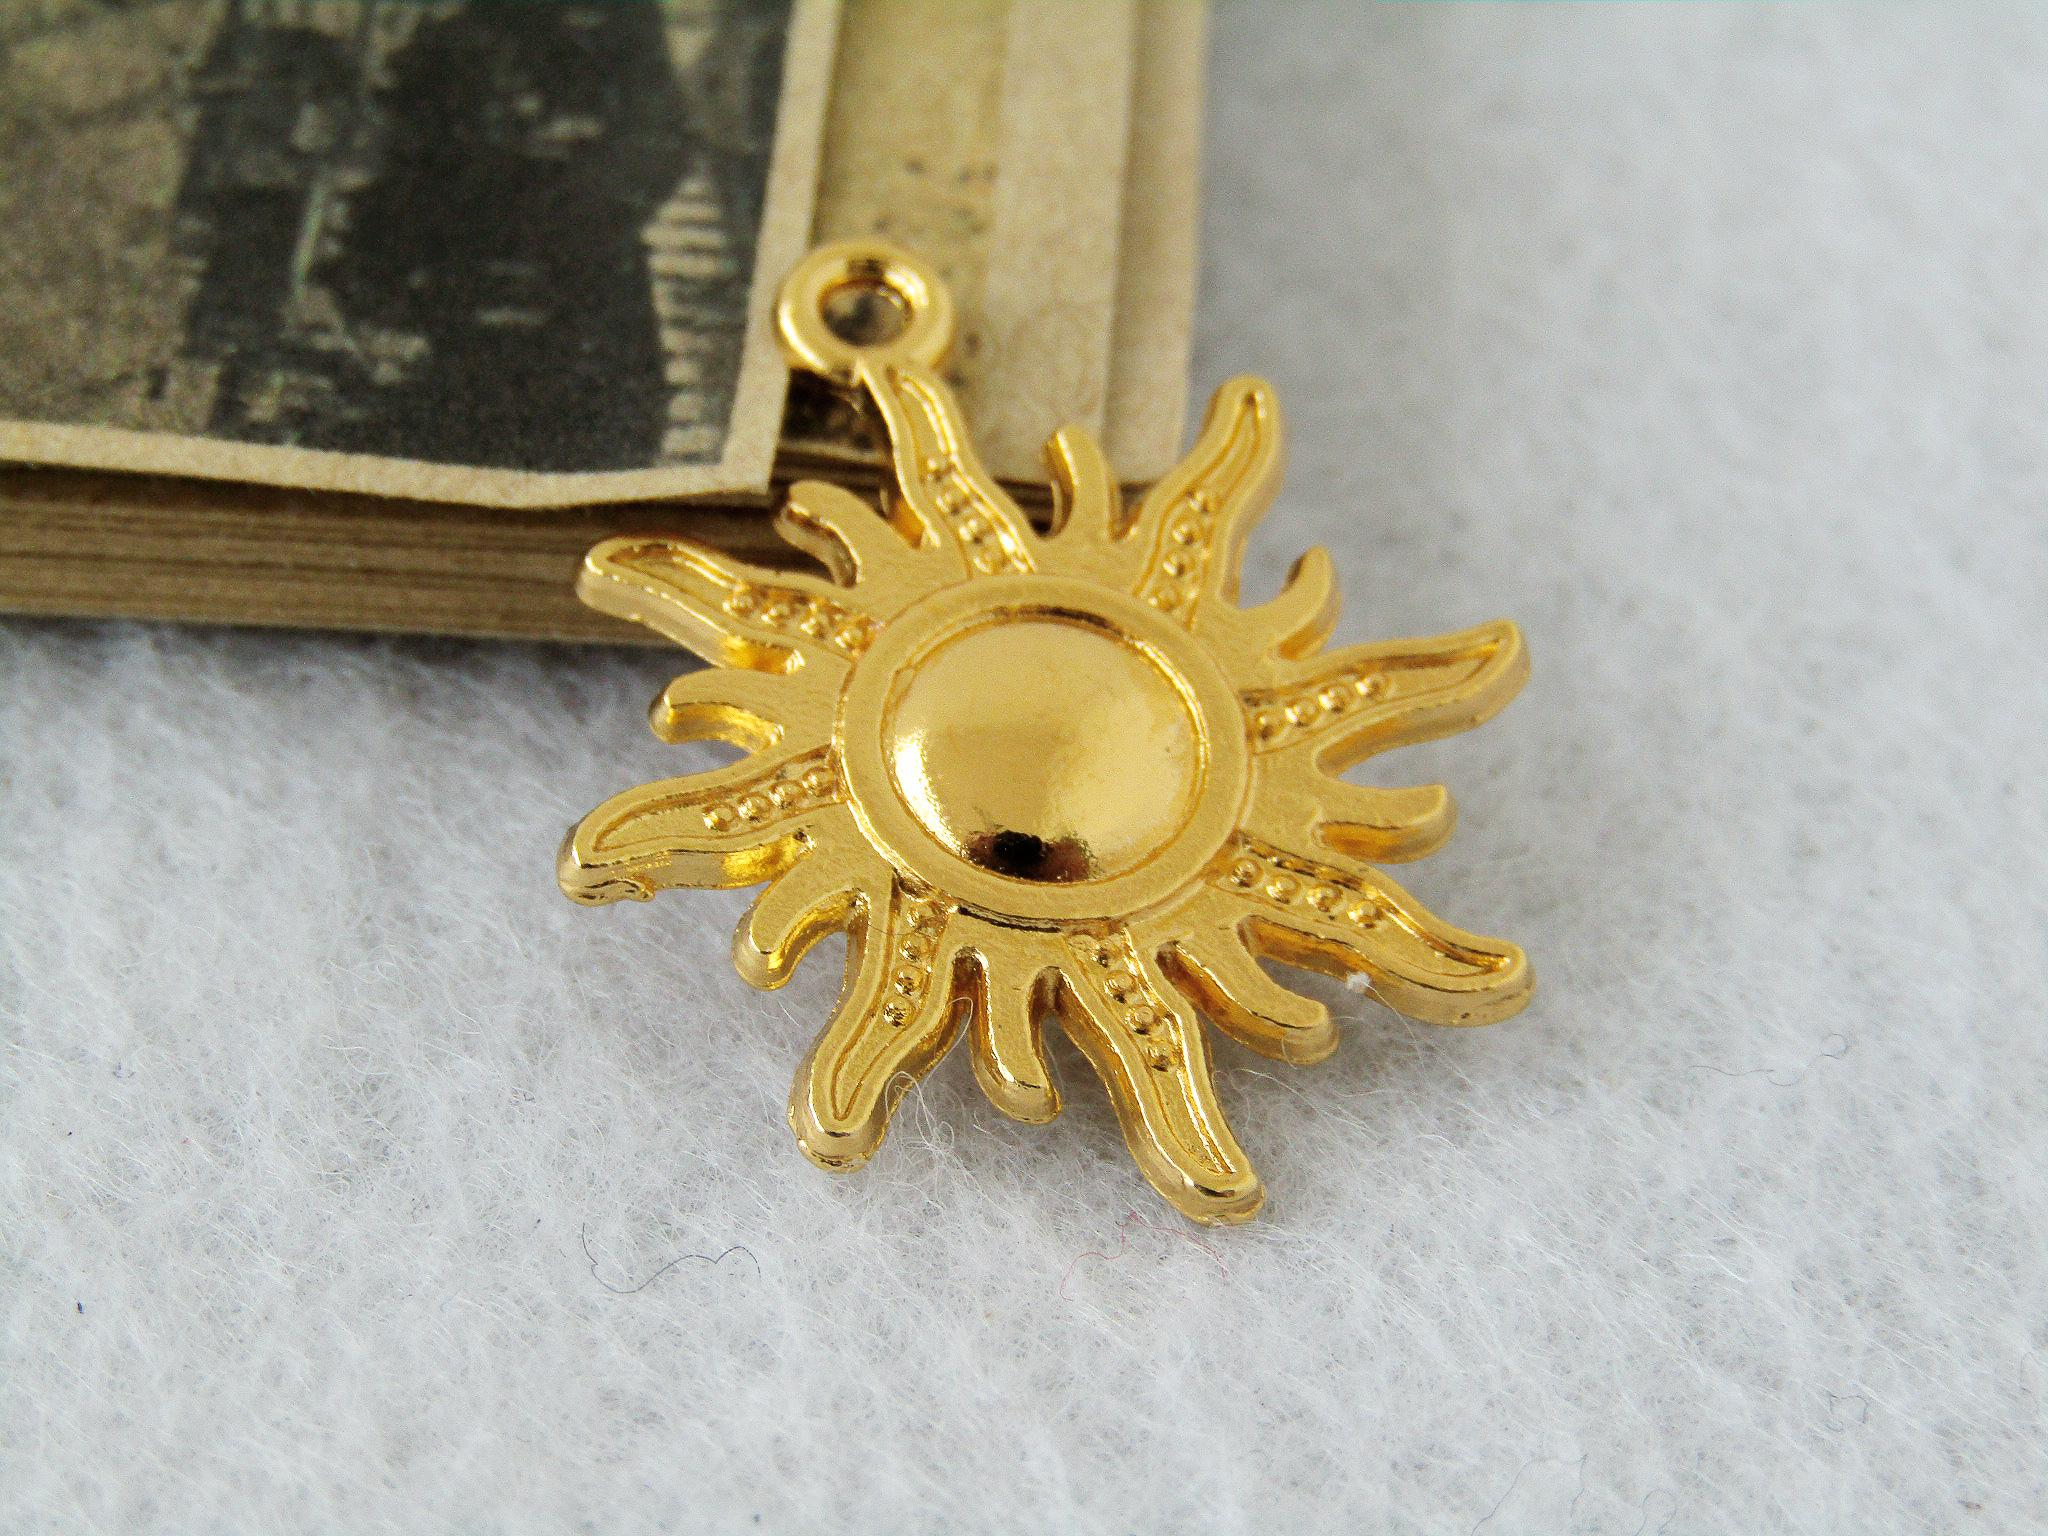 2018 25x28mm 16k gold sun charms gold sun pendants alloy sun 2018 25x28mm 16k gold sun charms gold sun pendants alloy sun necklace connector setting jewelry findings c7704 from luckystarsdiy8 217 dhgate aloadofball Gallery